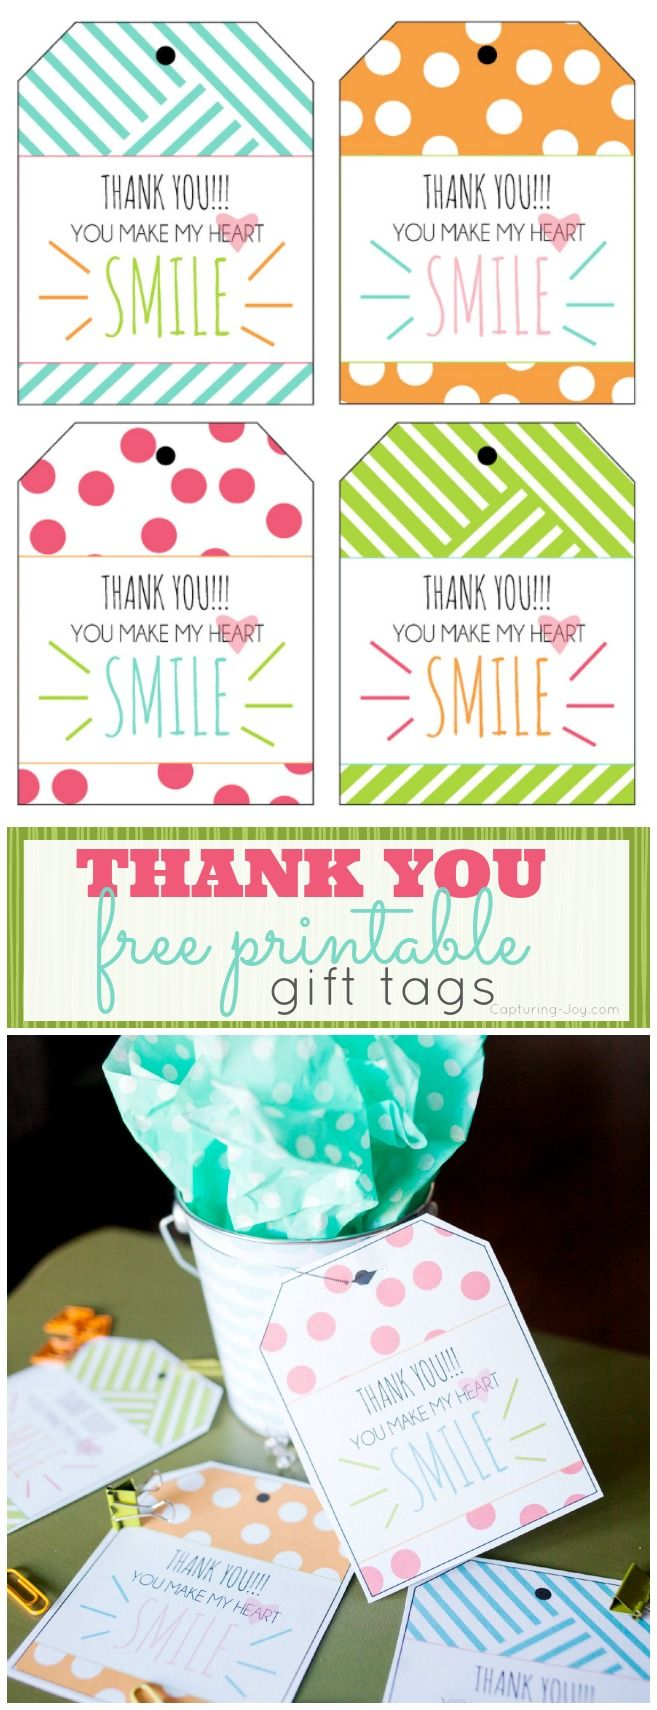 Thank You Free Printable Gift Tags. cute gift tags for your next thank you gift.